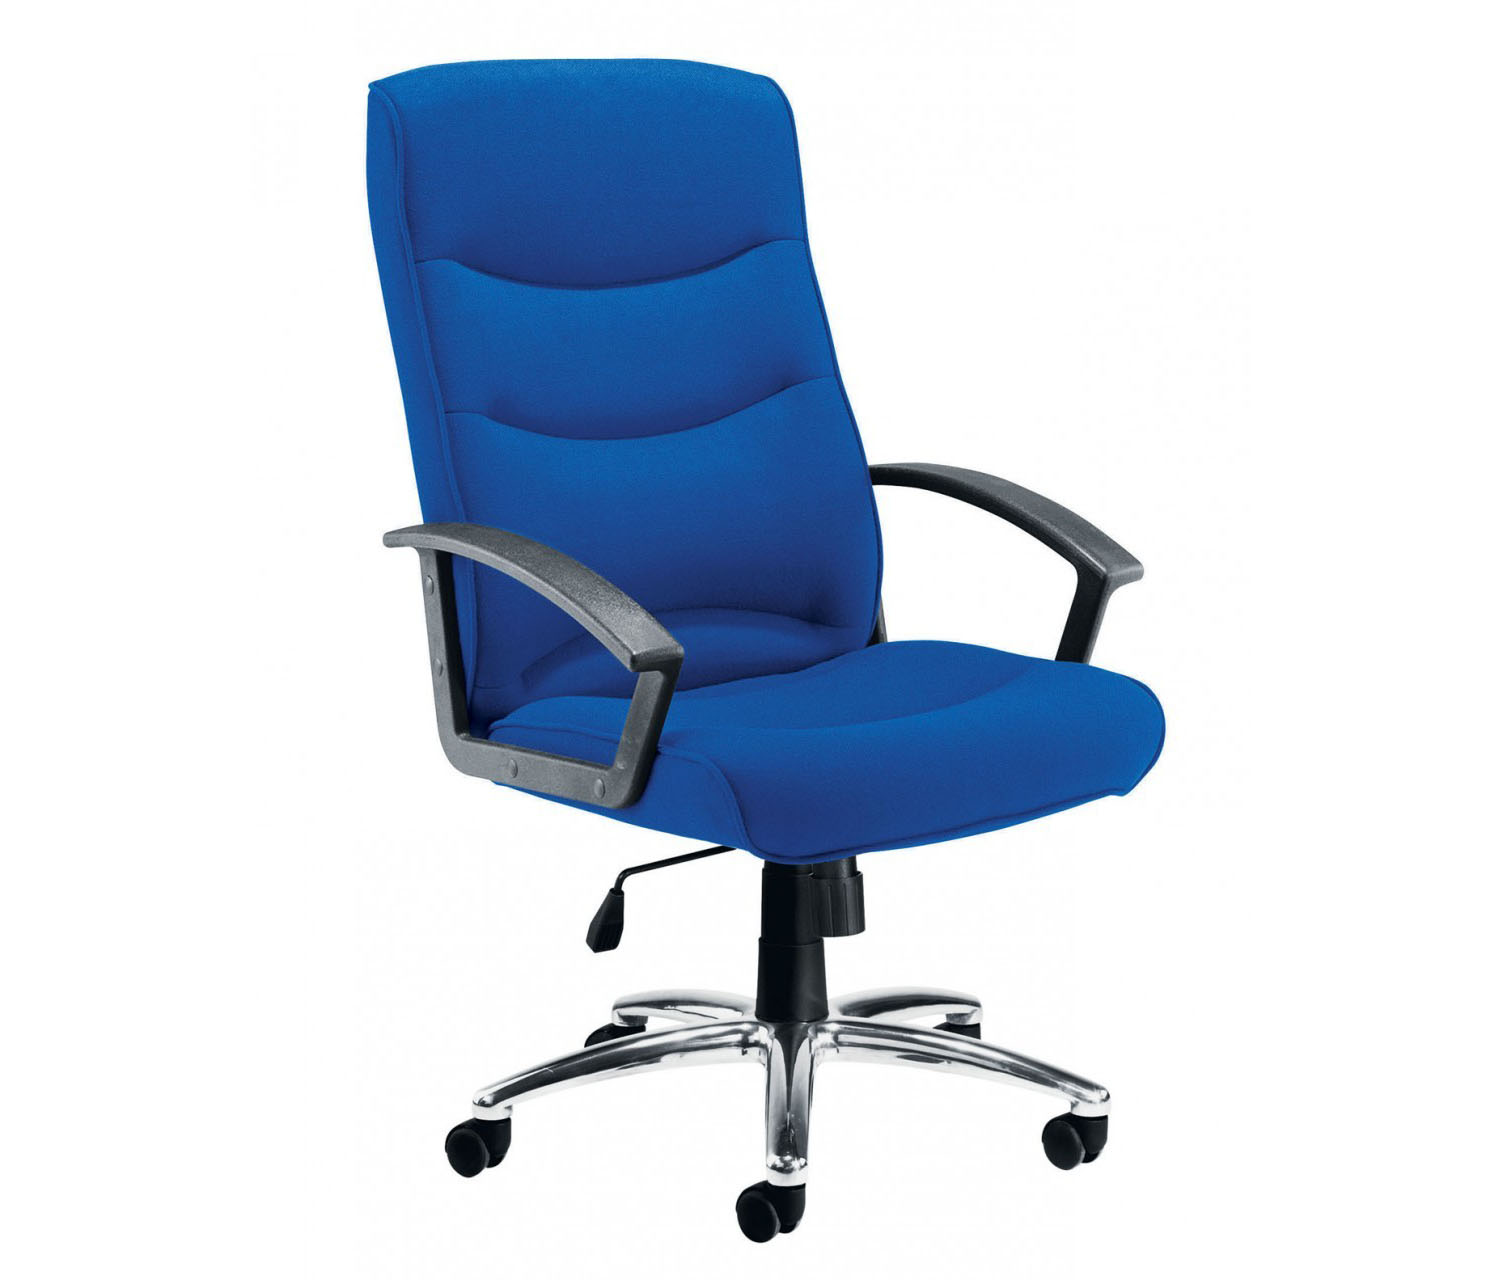 Exceptionnel Blue Best Budget Office Chair And Best Cheap Office Chair And Comfortable Office  Chair For Home